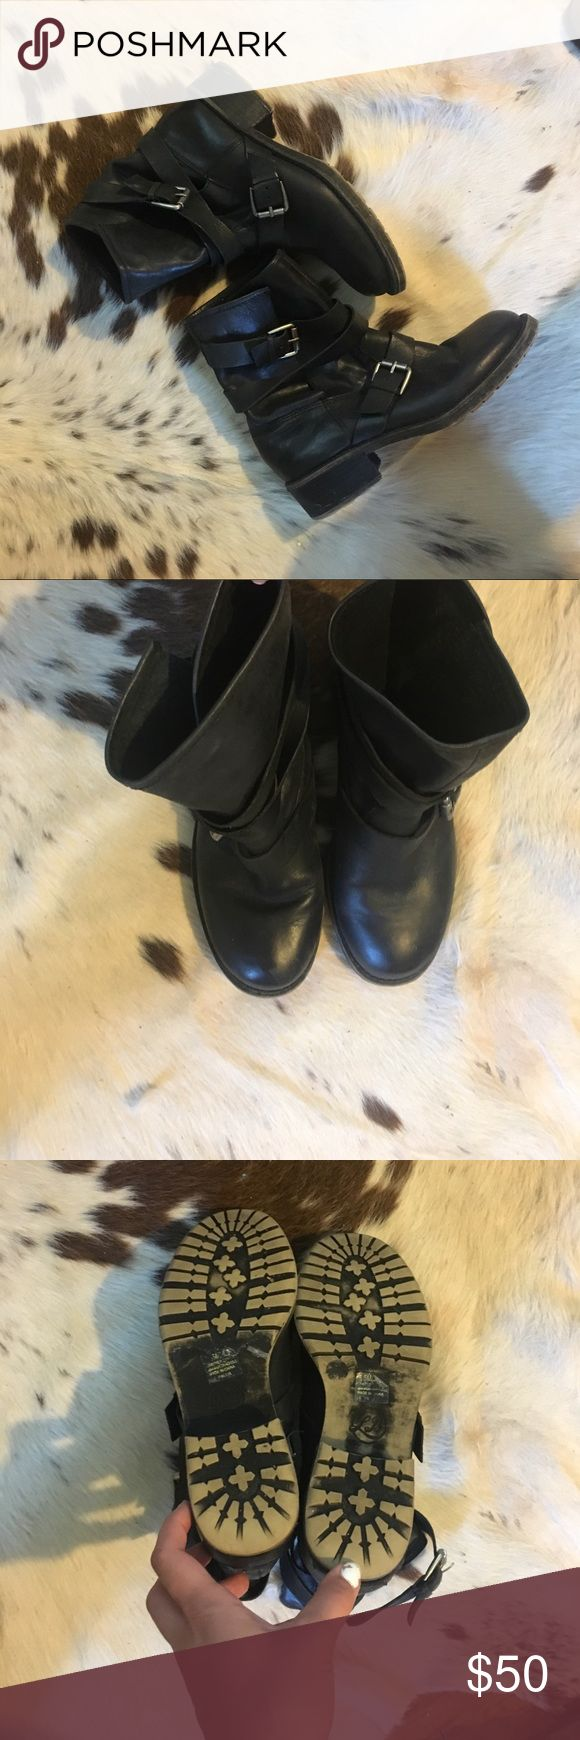 Leather Moro Boots Black Lucky Brand leather motorcycle boots. Slouchy fit on top. Solid leather. Worn pretty well but no major flaws to impair further wear! Hardware is a gunmetal silver! Lucky Brand Shoes Combat & Moto Boots